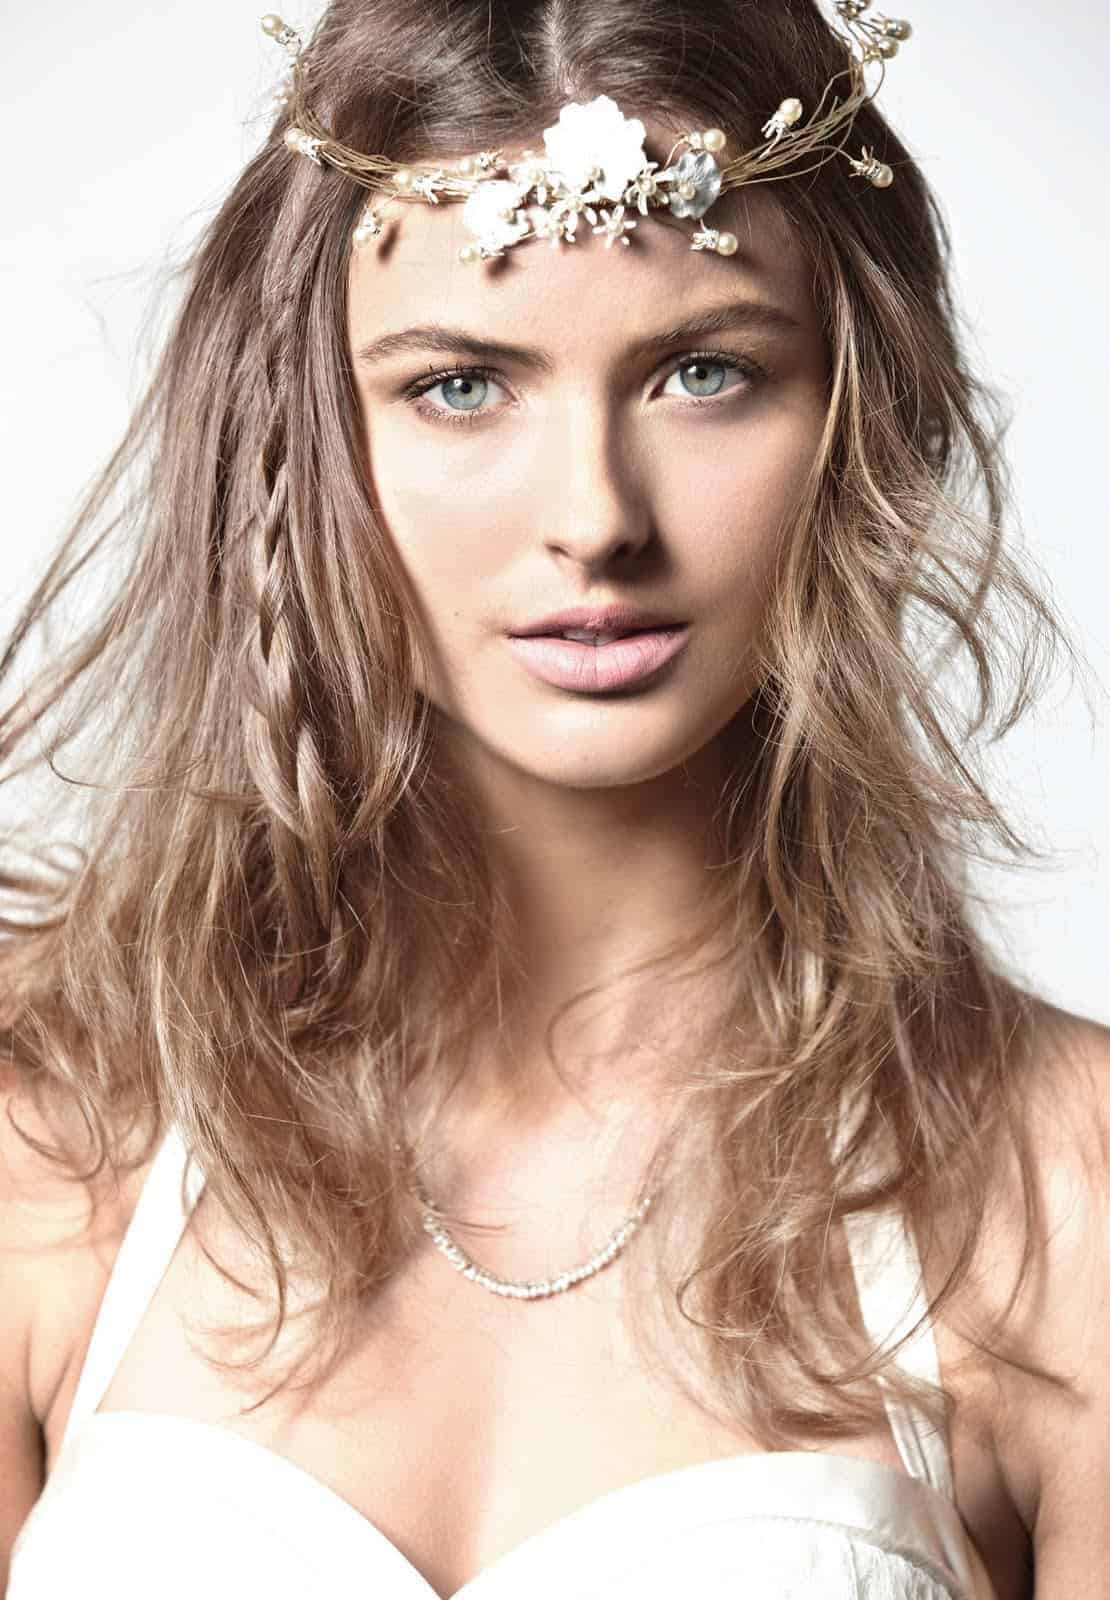 bohemian hairstyles for young women and ladies